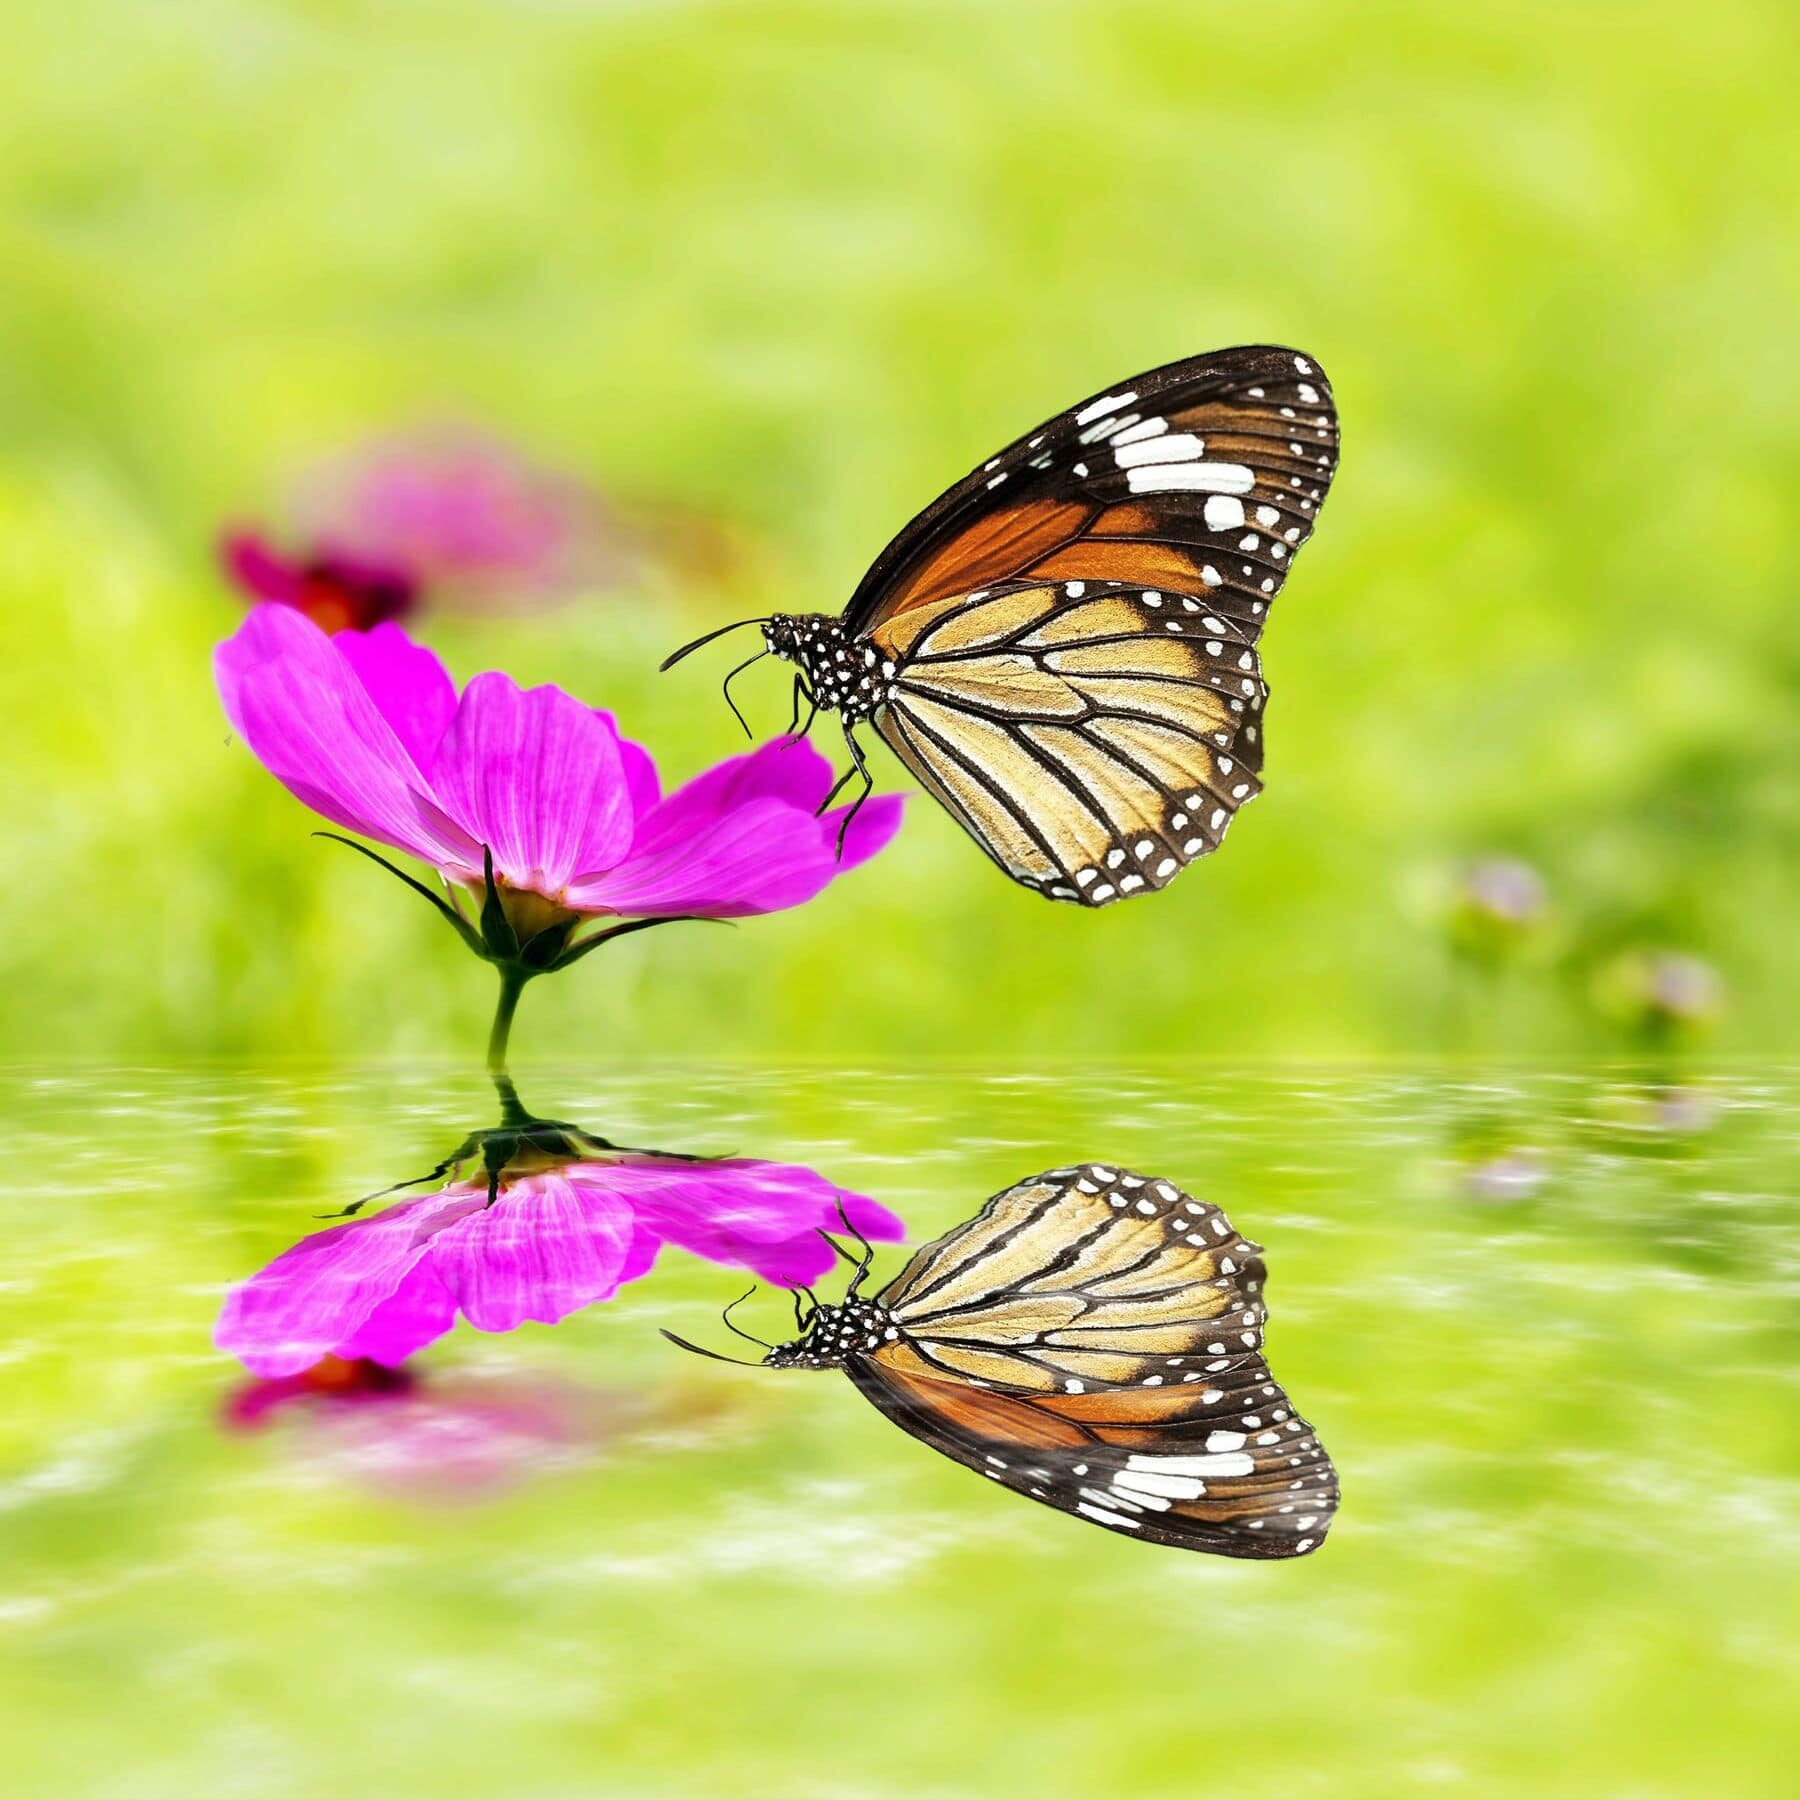 16766325 - butterfly sitting on green grass field with flowers with nice reflection